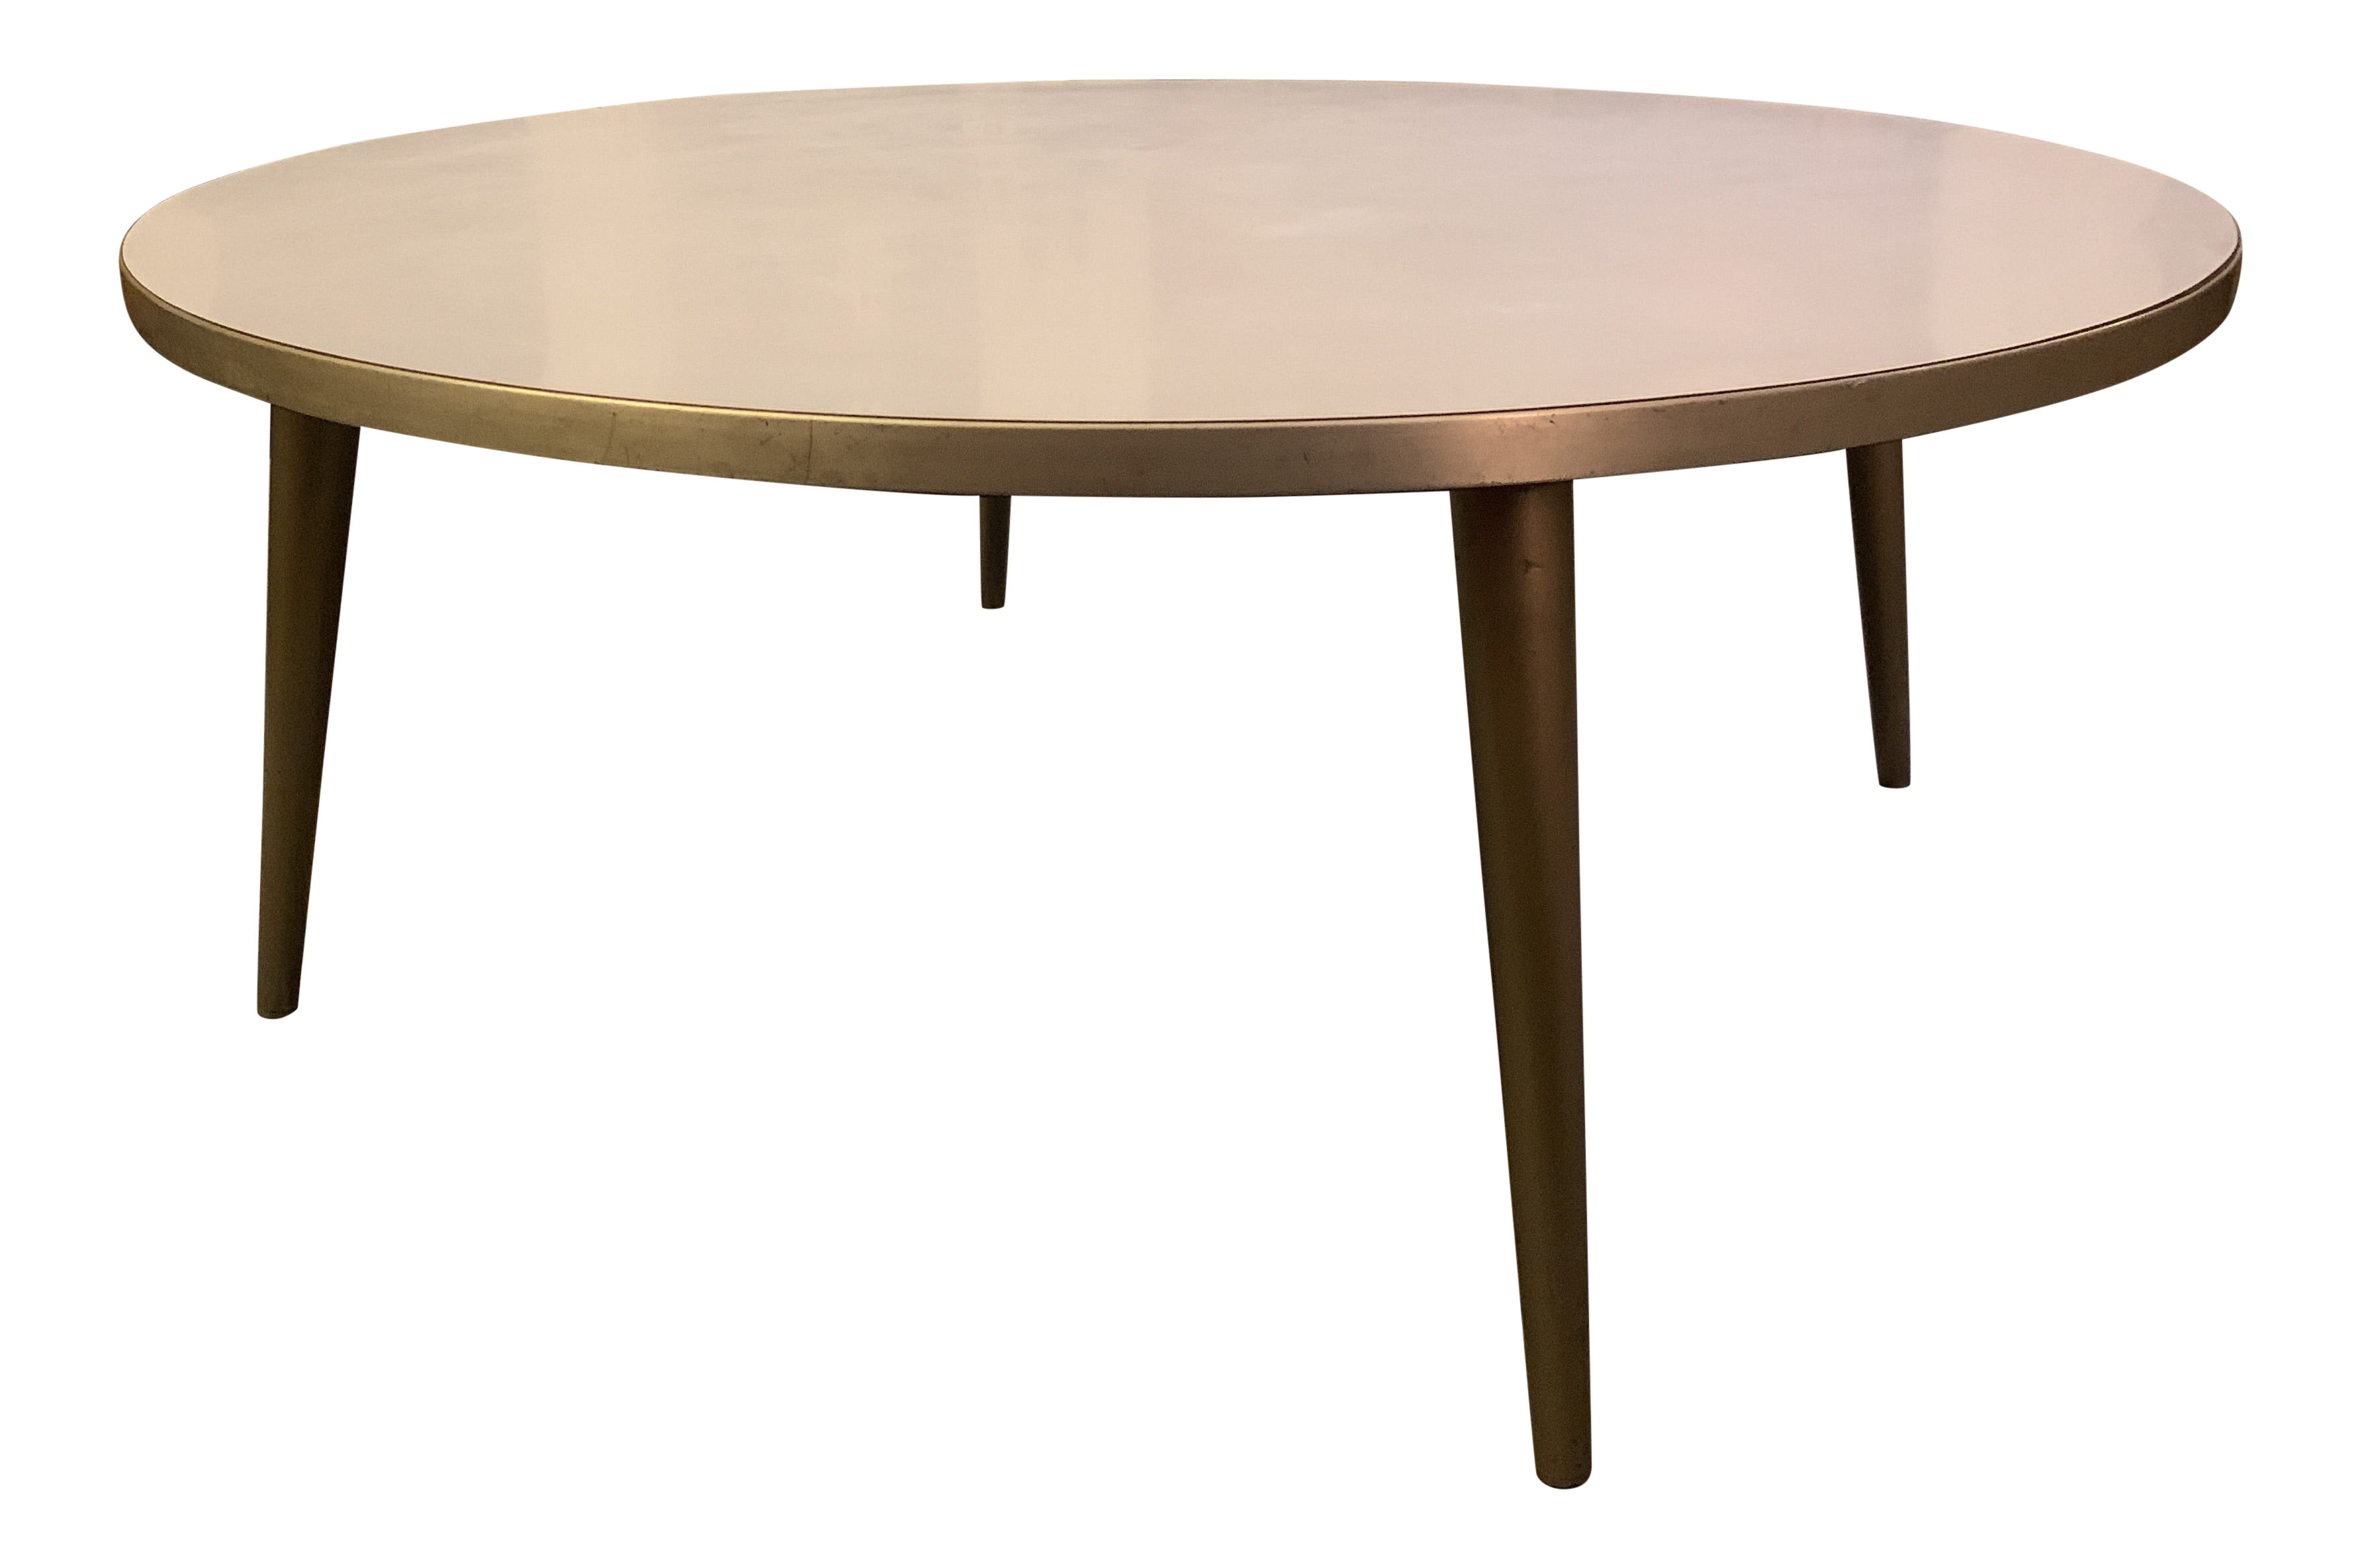 - 1950s Vintage Round Low Top Coffee Table Chairish